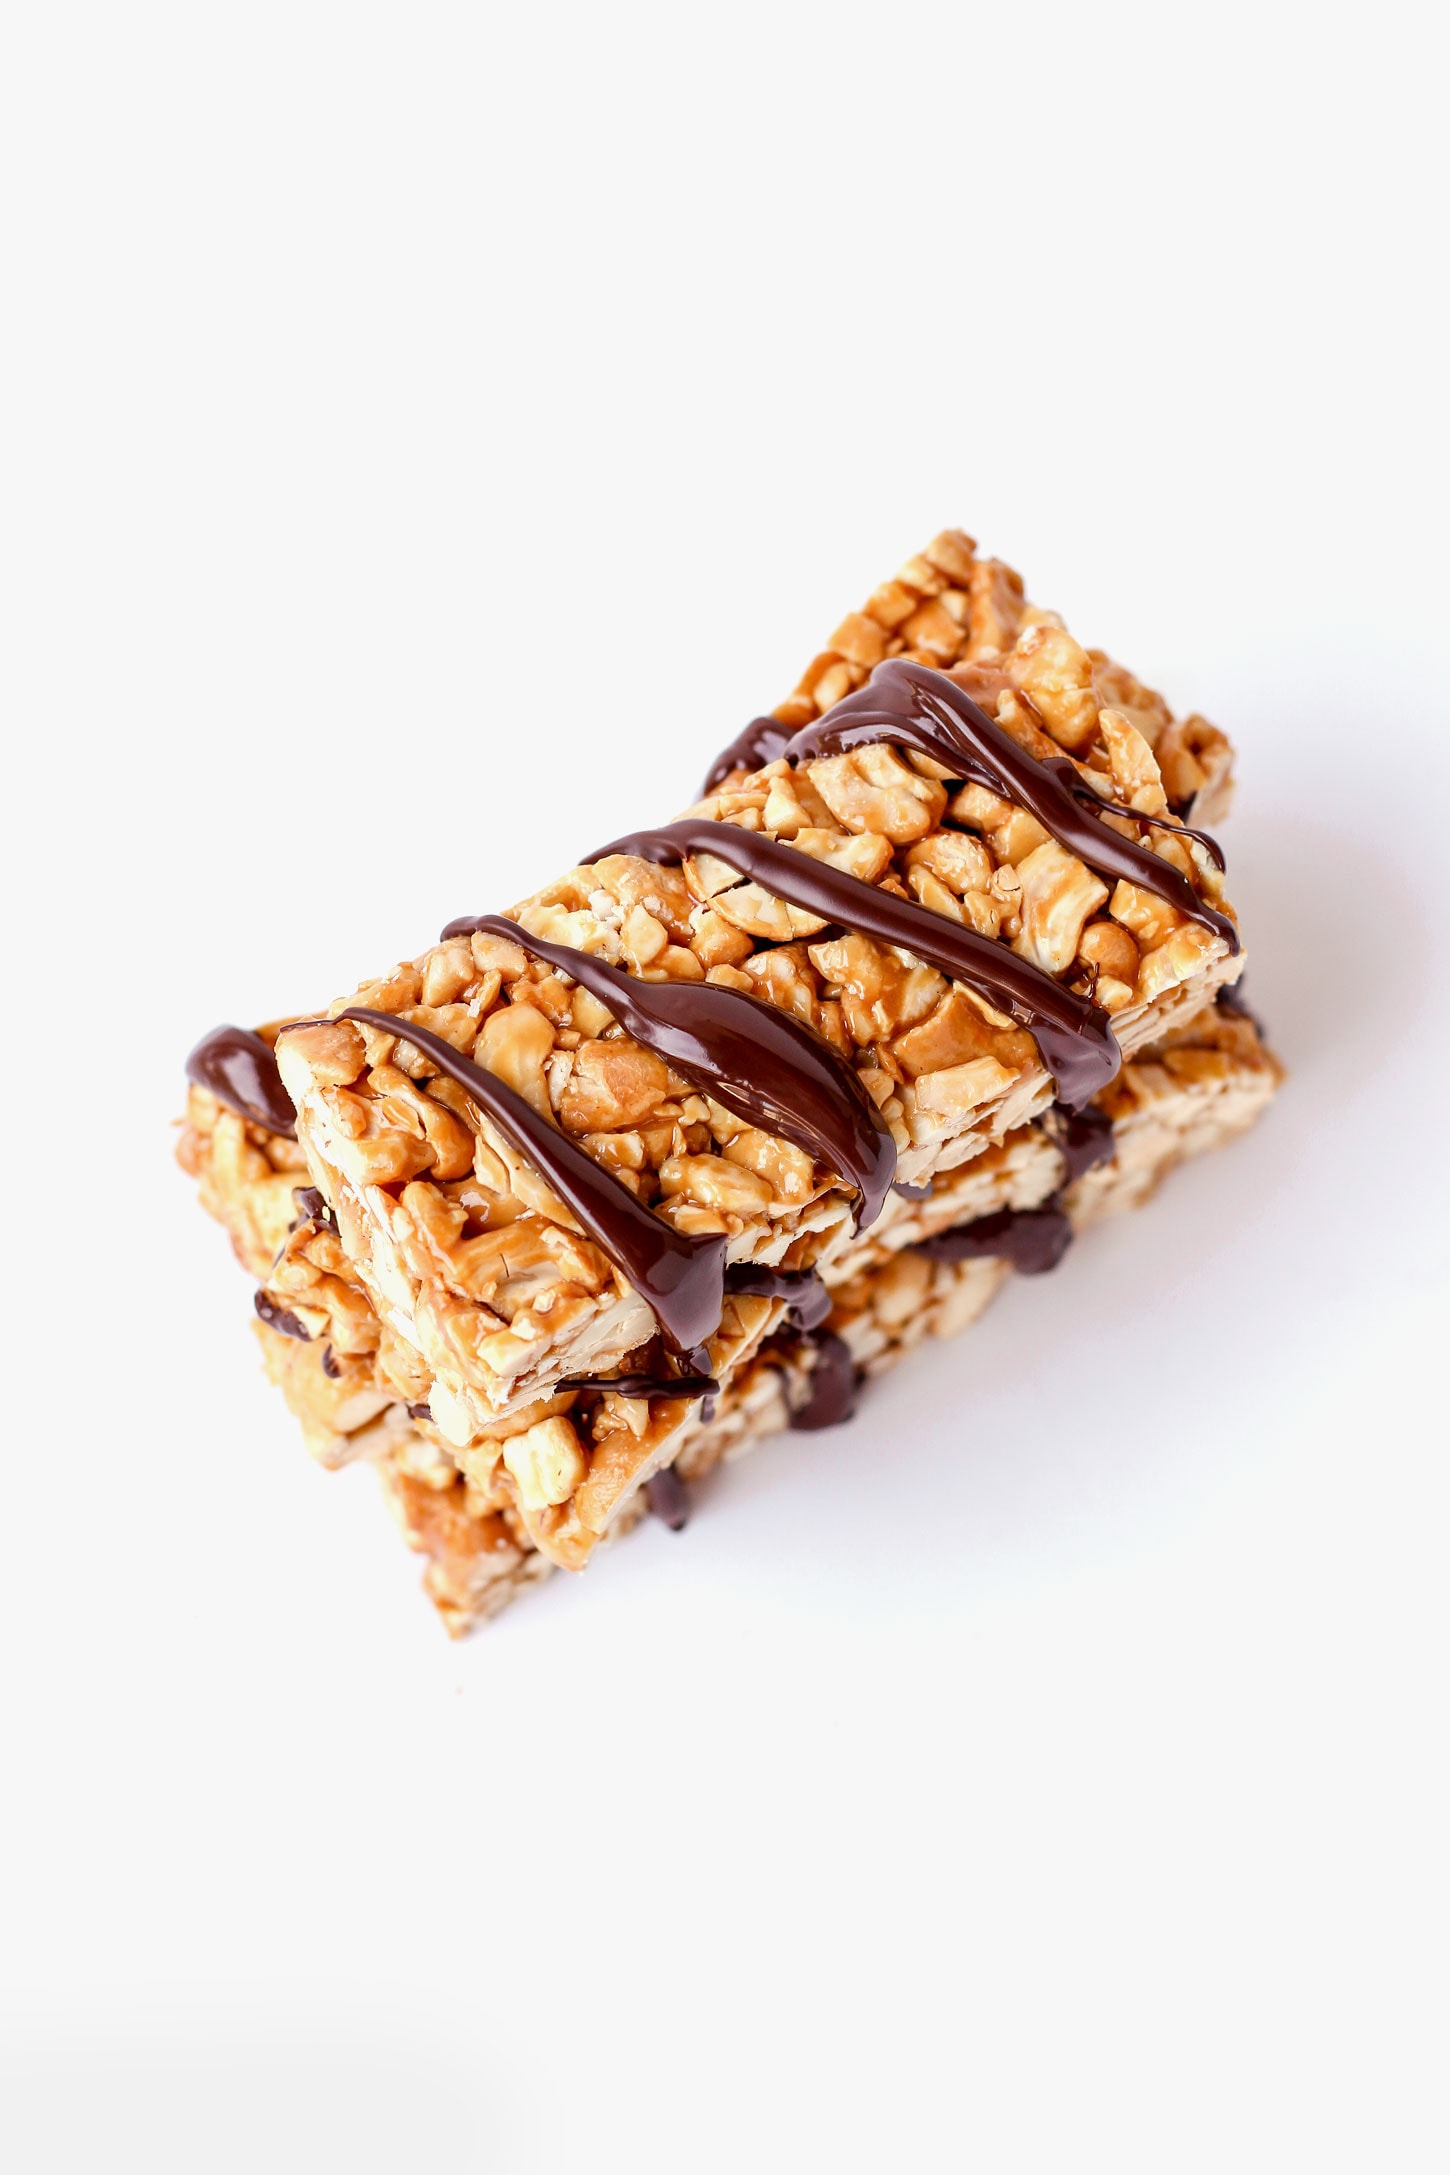 Very Cashew Vanilla Snack Bars